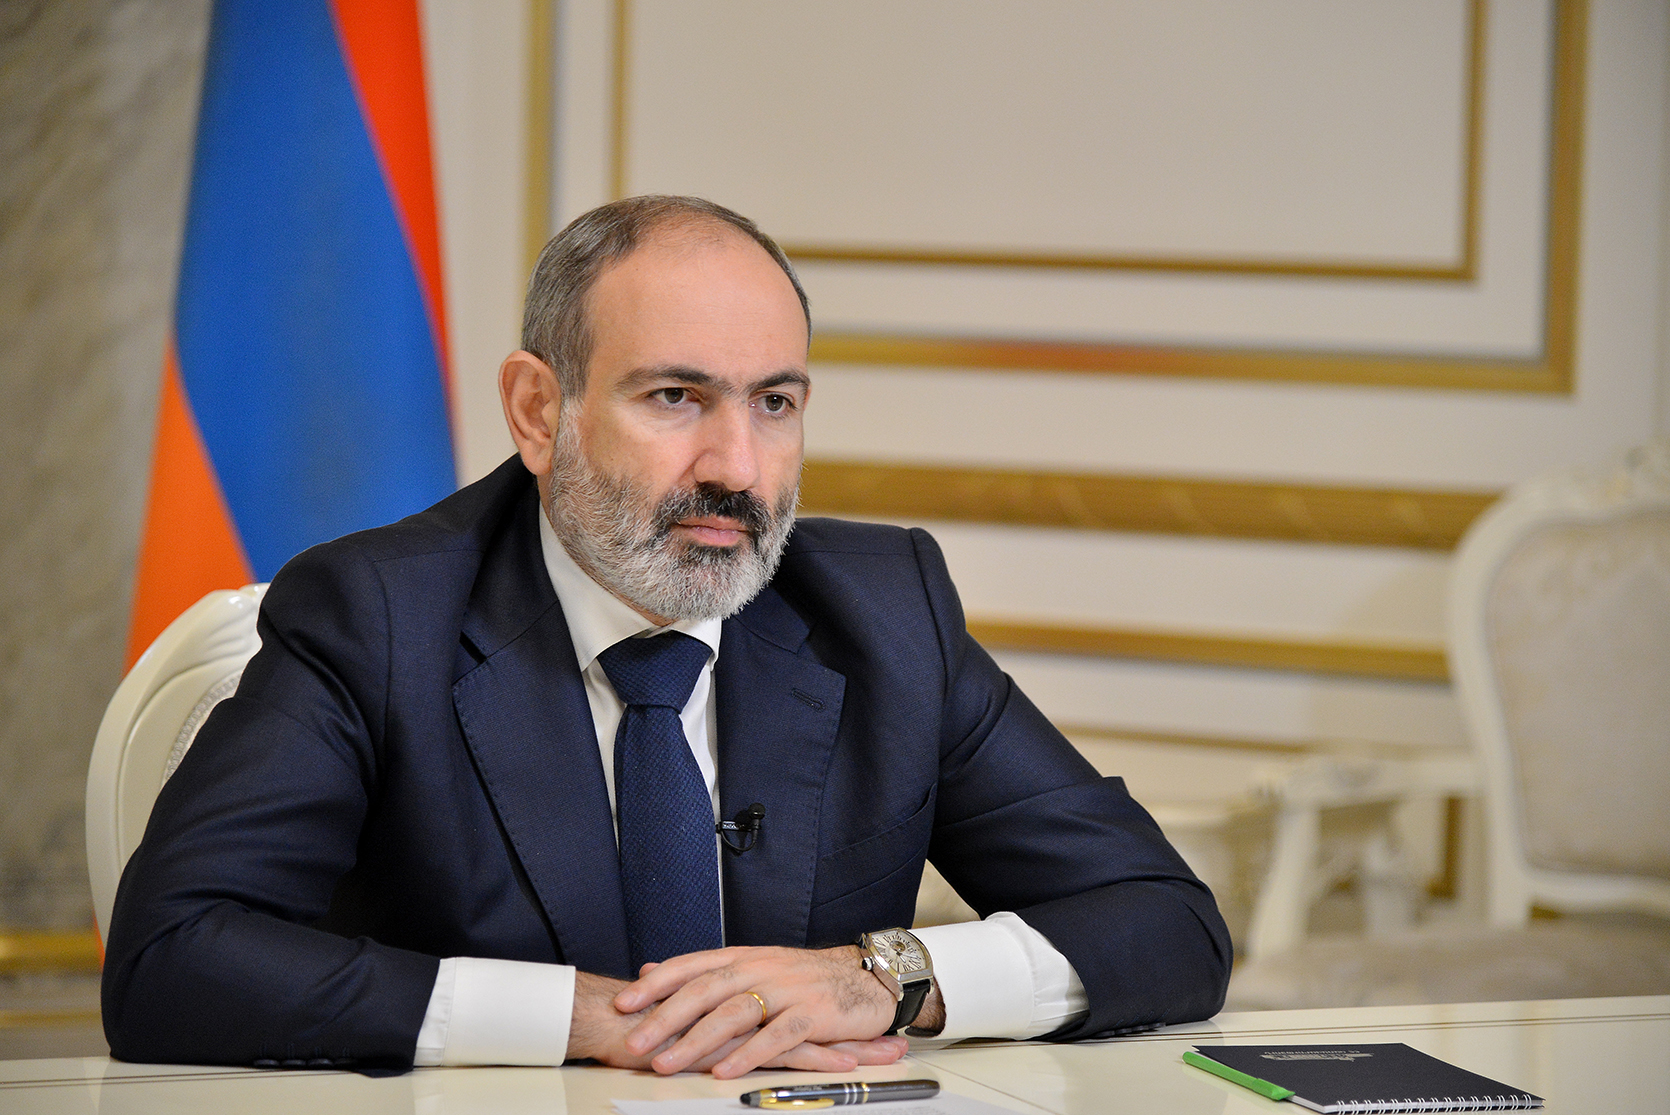 """Pashinyan Addresses The Nation, Says He Won't Resign, Blames Opposition And """"External"""" Forces For Chaos"""